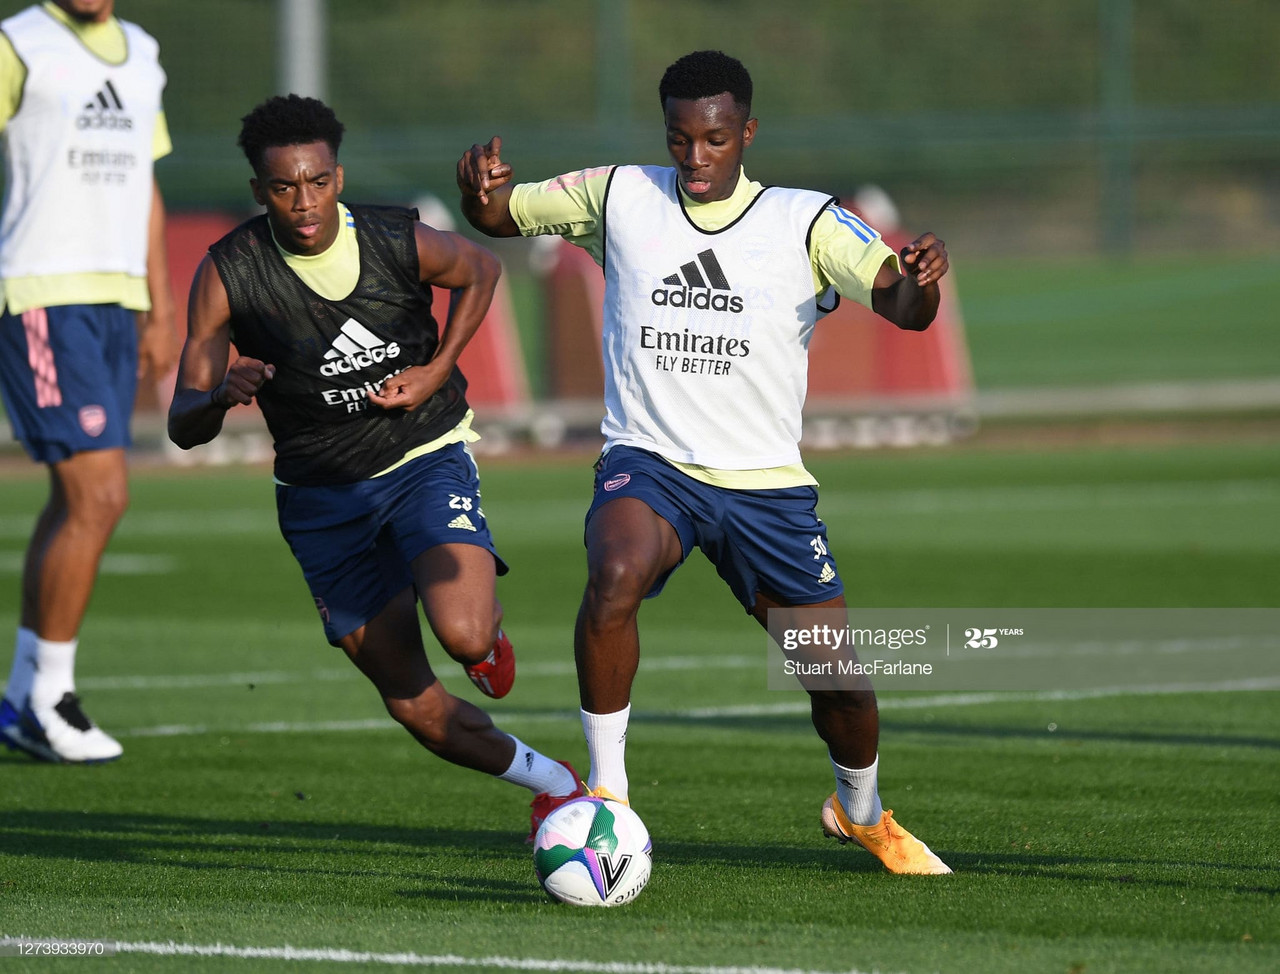 Opinion: Eddie Nketiah should displace Lacazette as starting forward